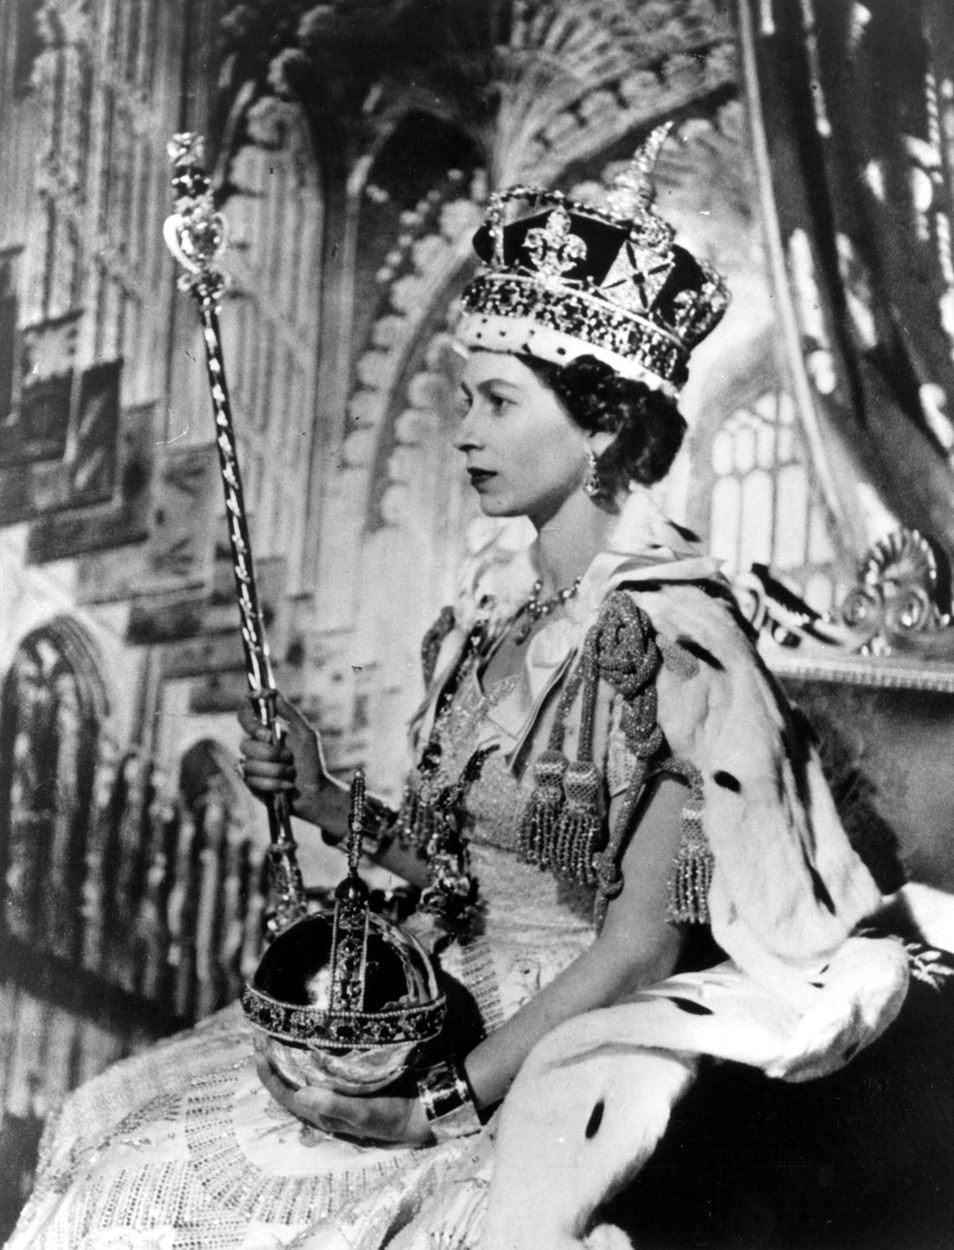 Jun 02, 1953 - London, England, UK - QUEEN ELIZABETH II has been crowned at a coronation ceremony in Westminster Abbey in London. In front of more than 8,000 guests, including prime ministers and heads of state from around the Commonwealth, she took the Coronation Oath and is now bound to serve her people and to maintain the laws of God. The princess formally proclaimed herself Queen and Head of the Commonwealth and Defender of the Faith in February 1952 but the amount of planning and a wish for a sunny day for the occasion led to the long but excited wait for this day.,Image: 210124828, License: Rights-managed, Restrictions: , Model Release: no